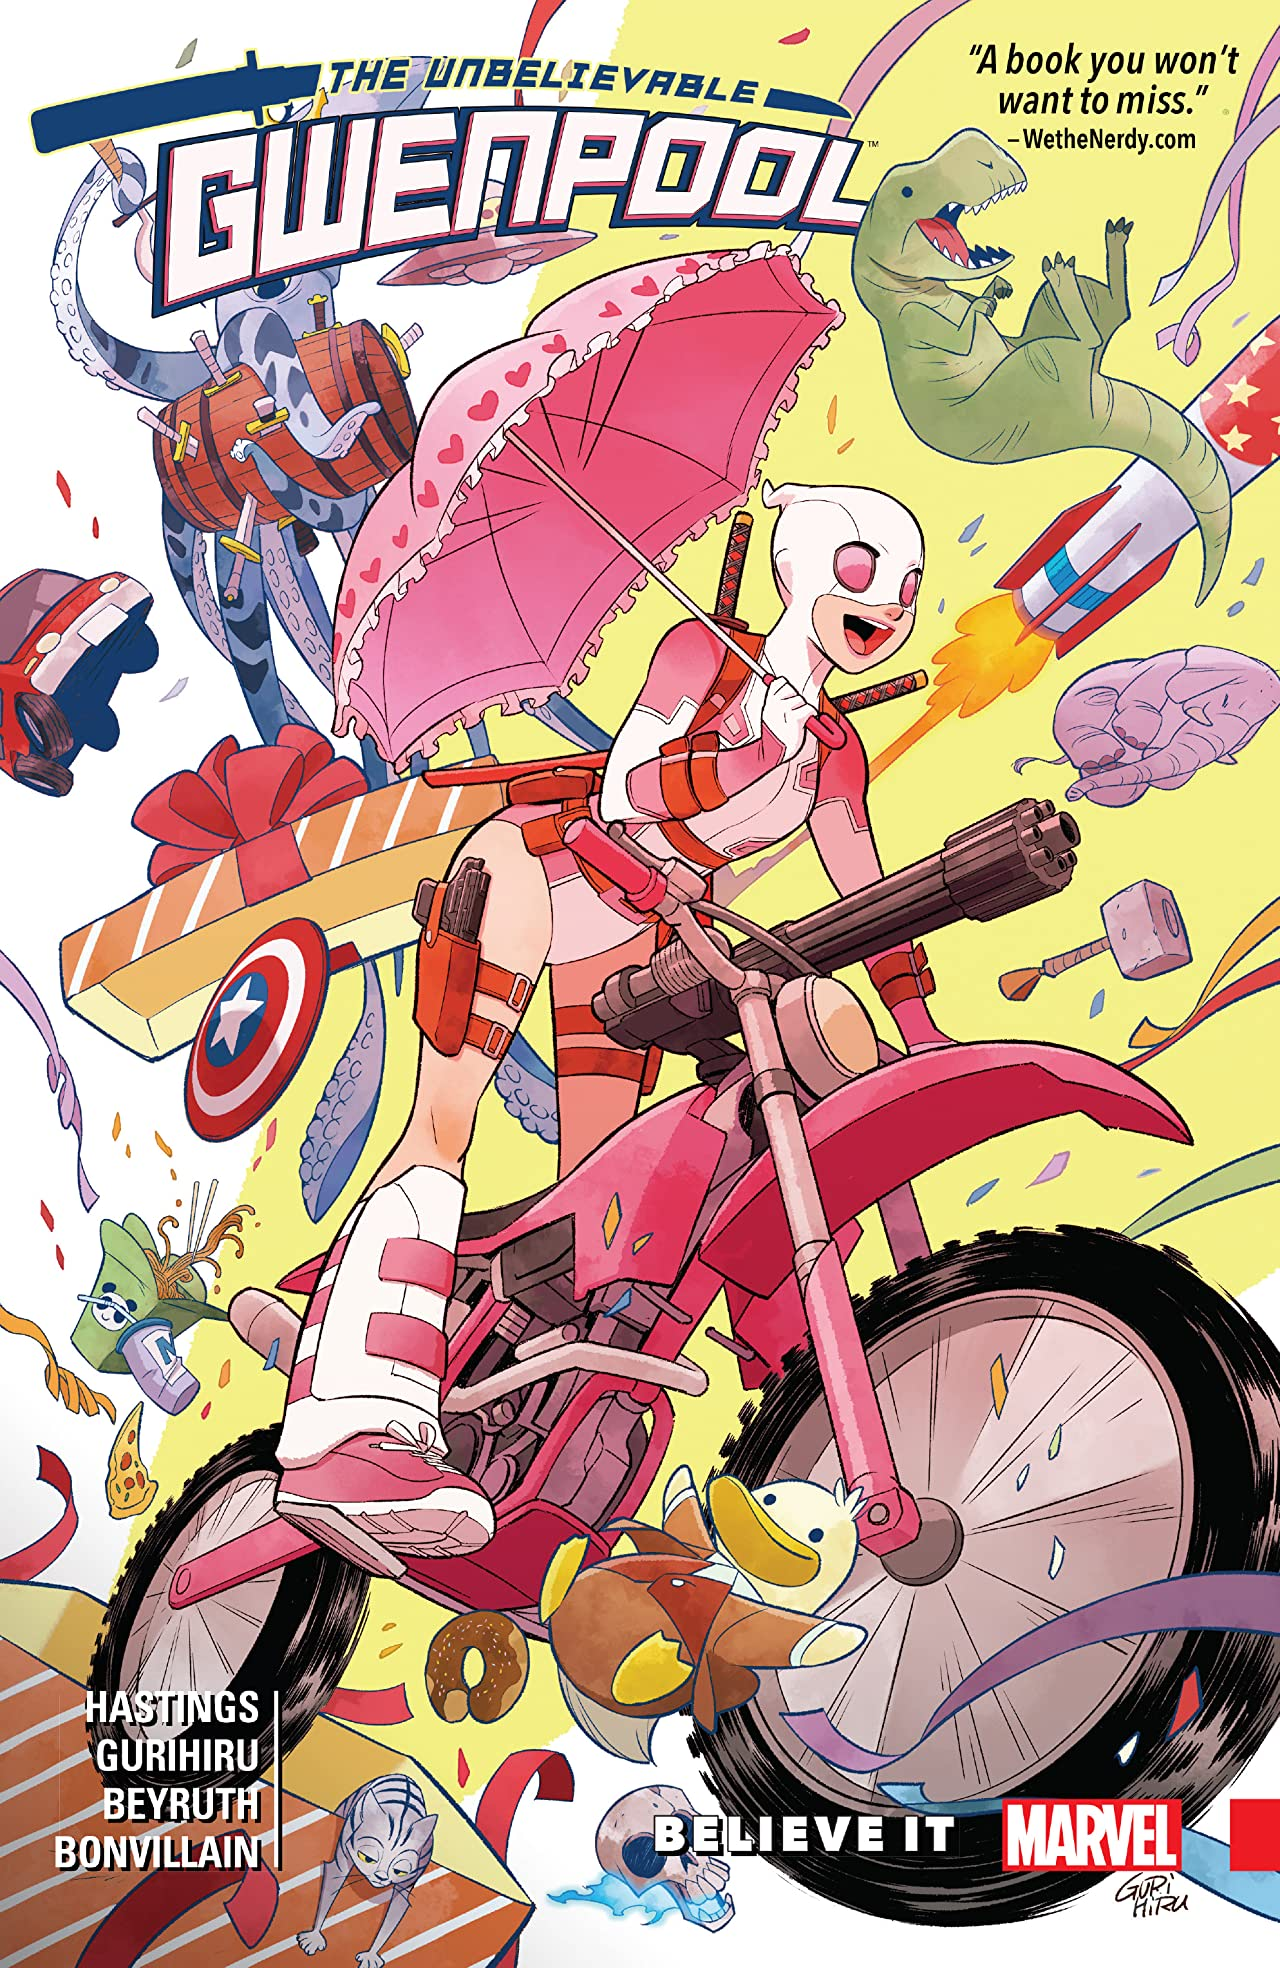 Gwenpool, The Unbelievable Vol. 1: Believe It